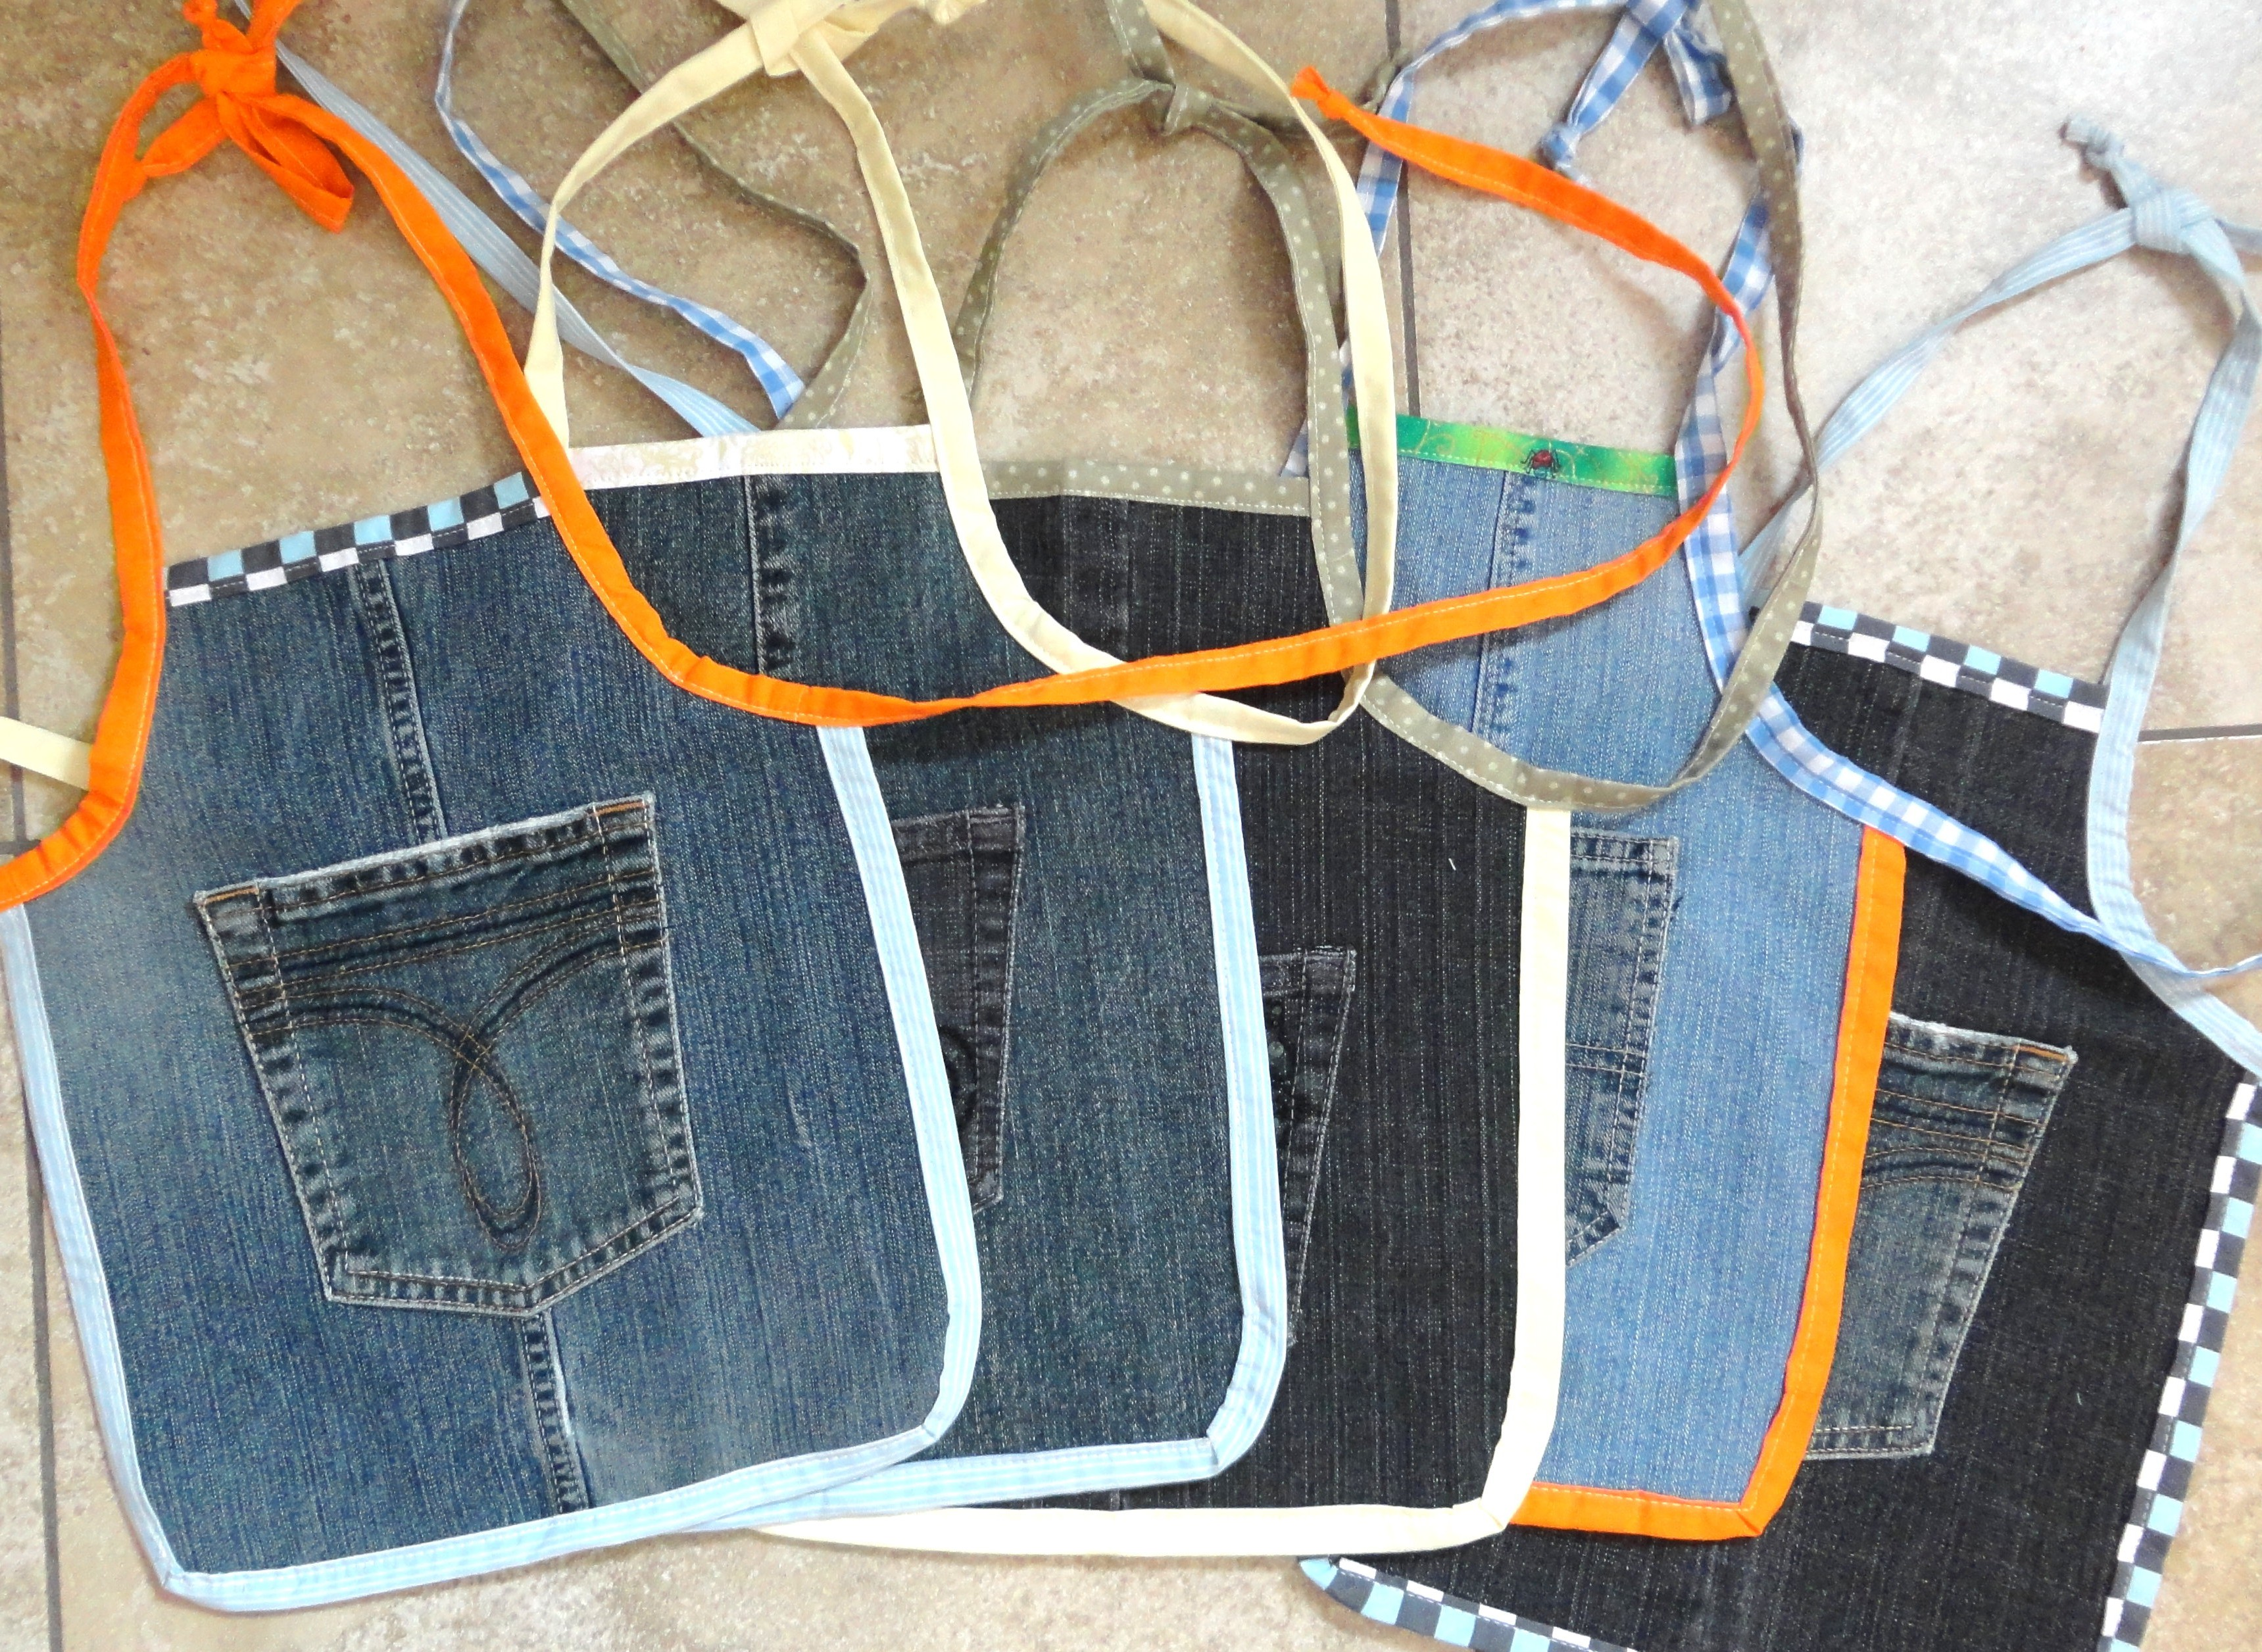 How to Make an Apron from Old Jeans forecasting